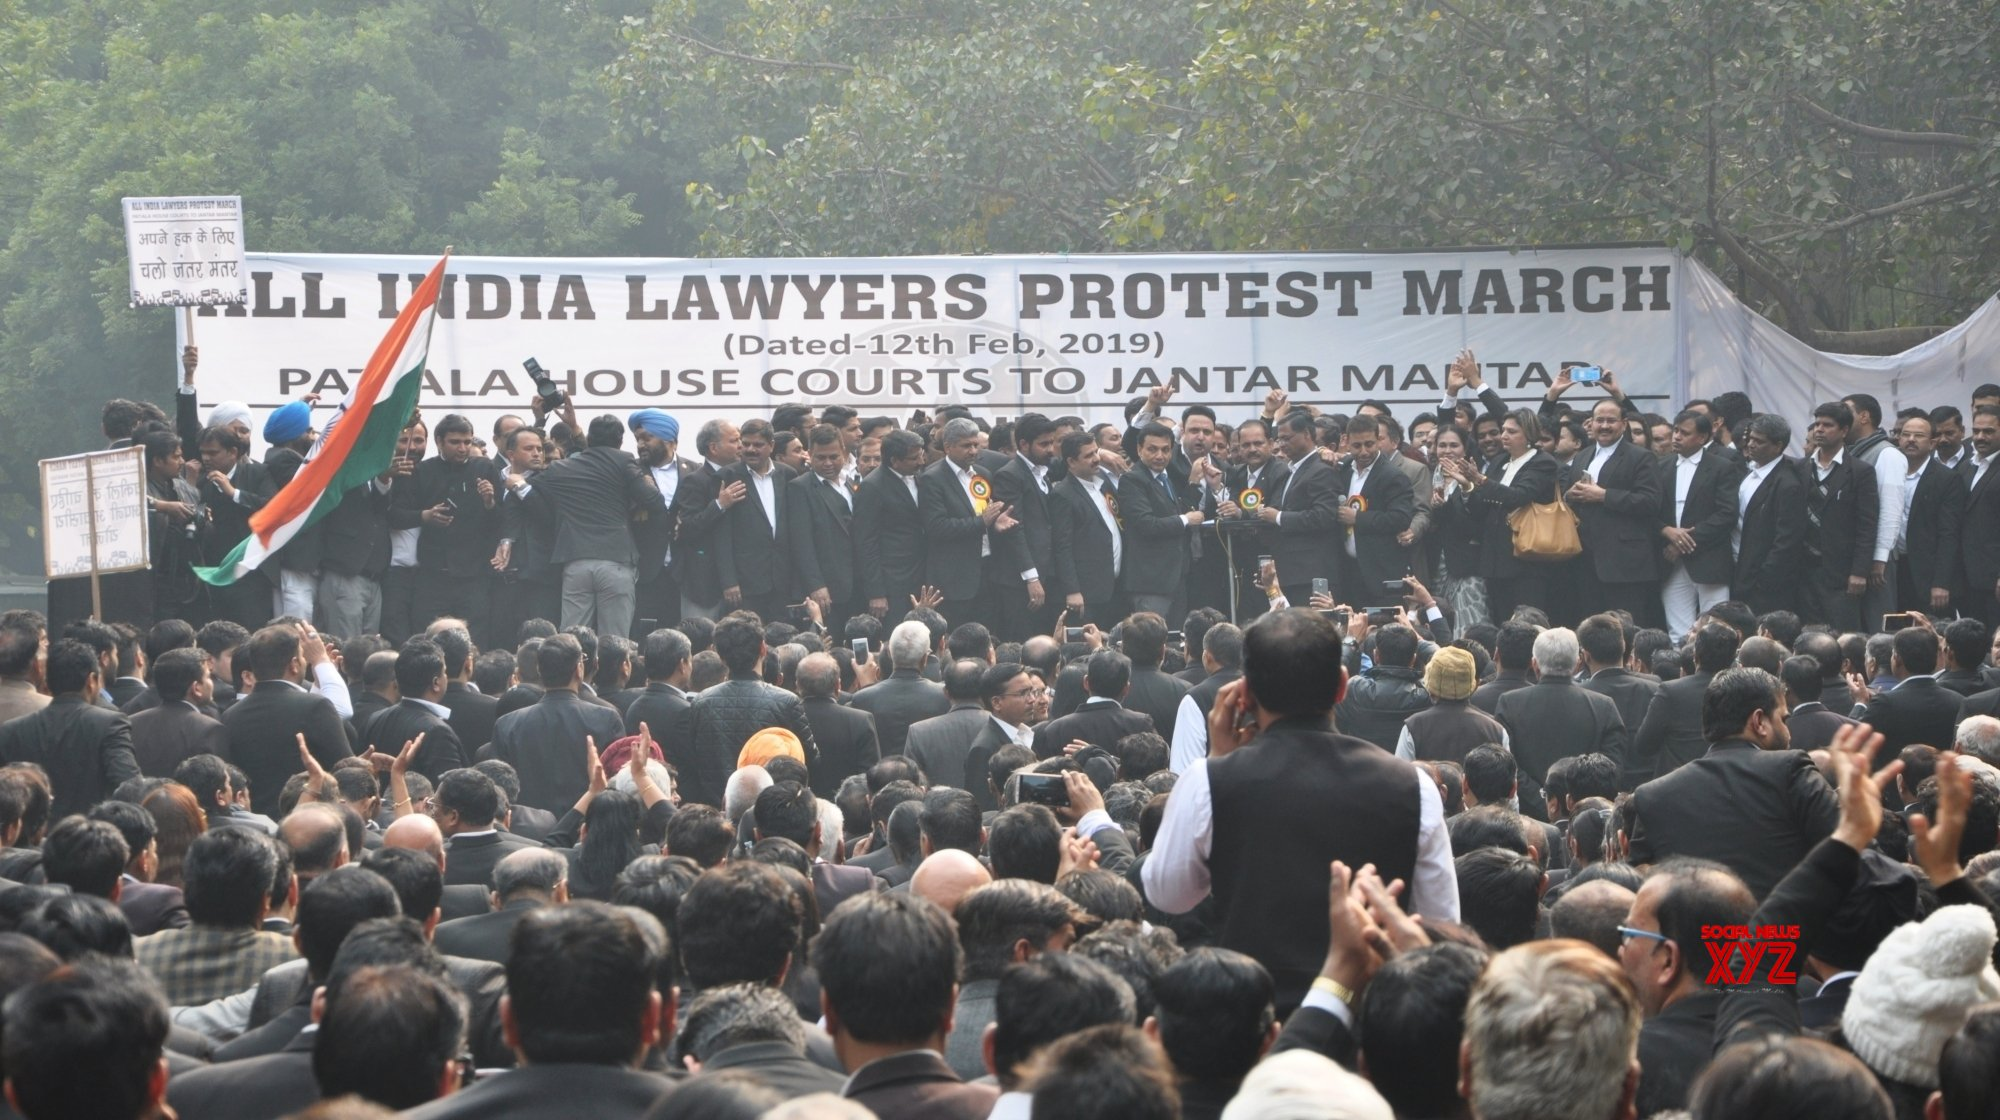 New Delhi: Lawyers' demonstration #Gallery